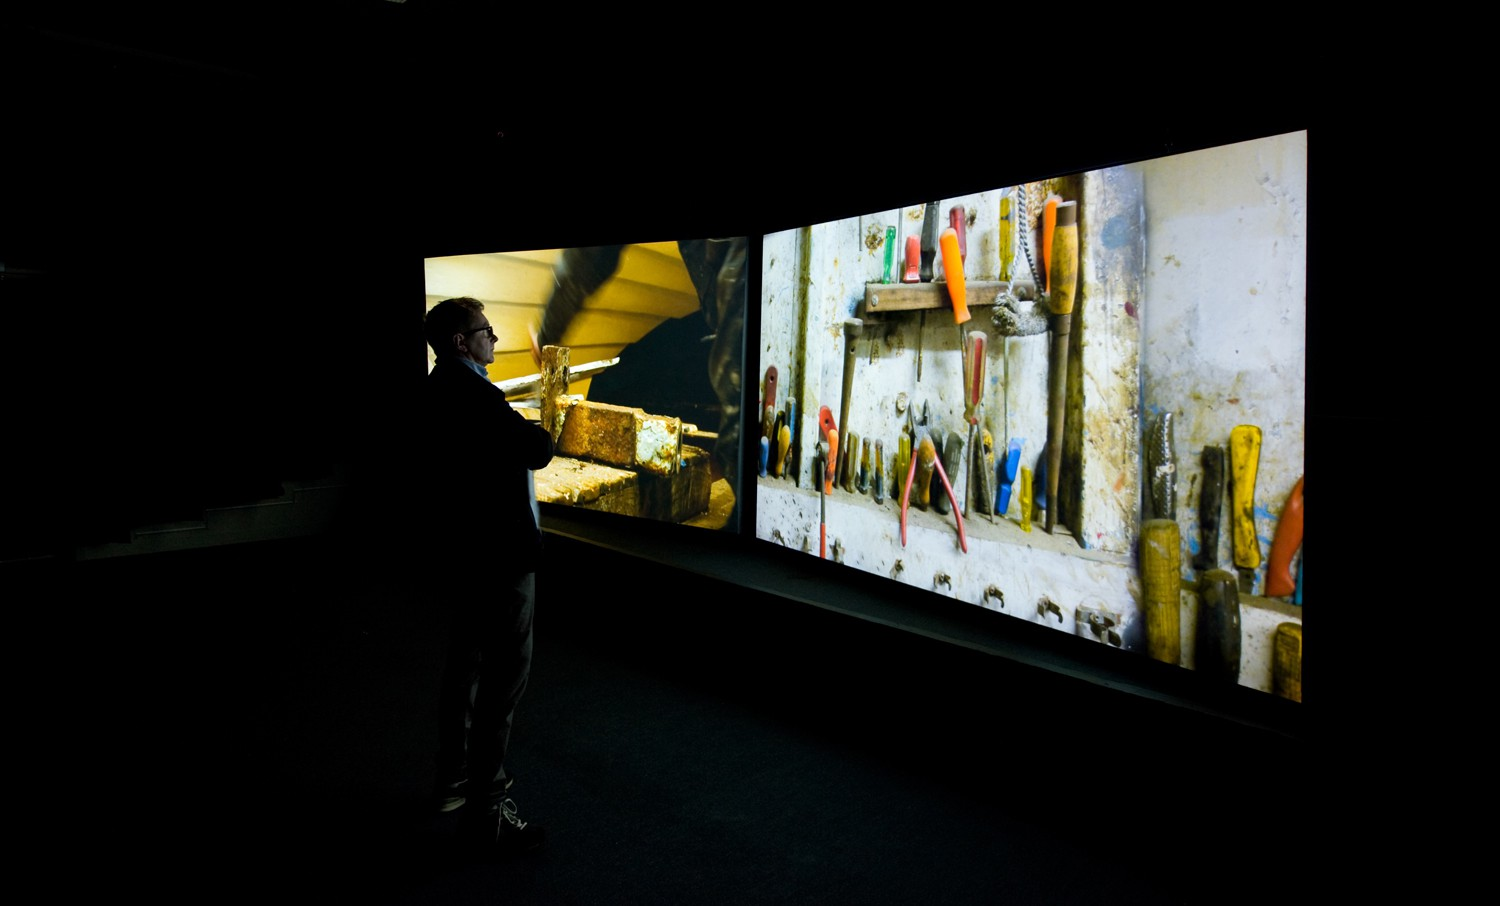 Mikhail Karikis, The Endeavour (2015), two-channel & stereo sound installation at The Gallery, Tyneside Cinema, Newcastle, UK. Installation view © Colin Davison